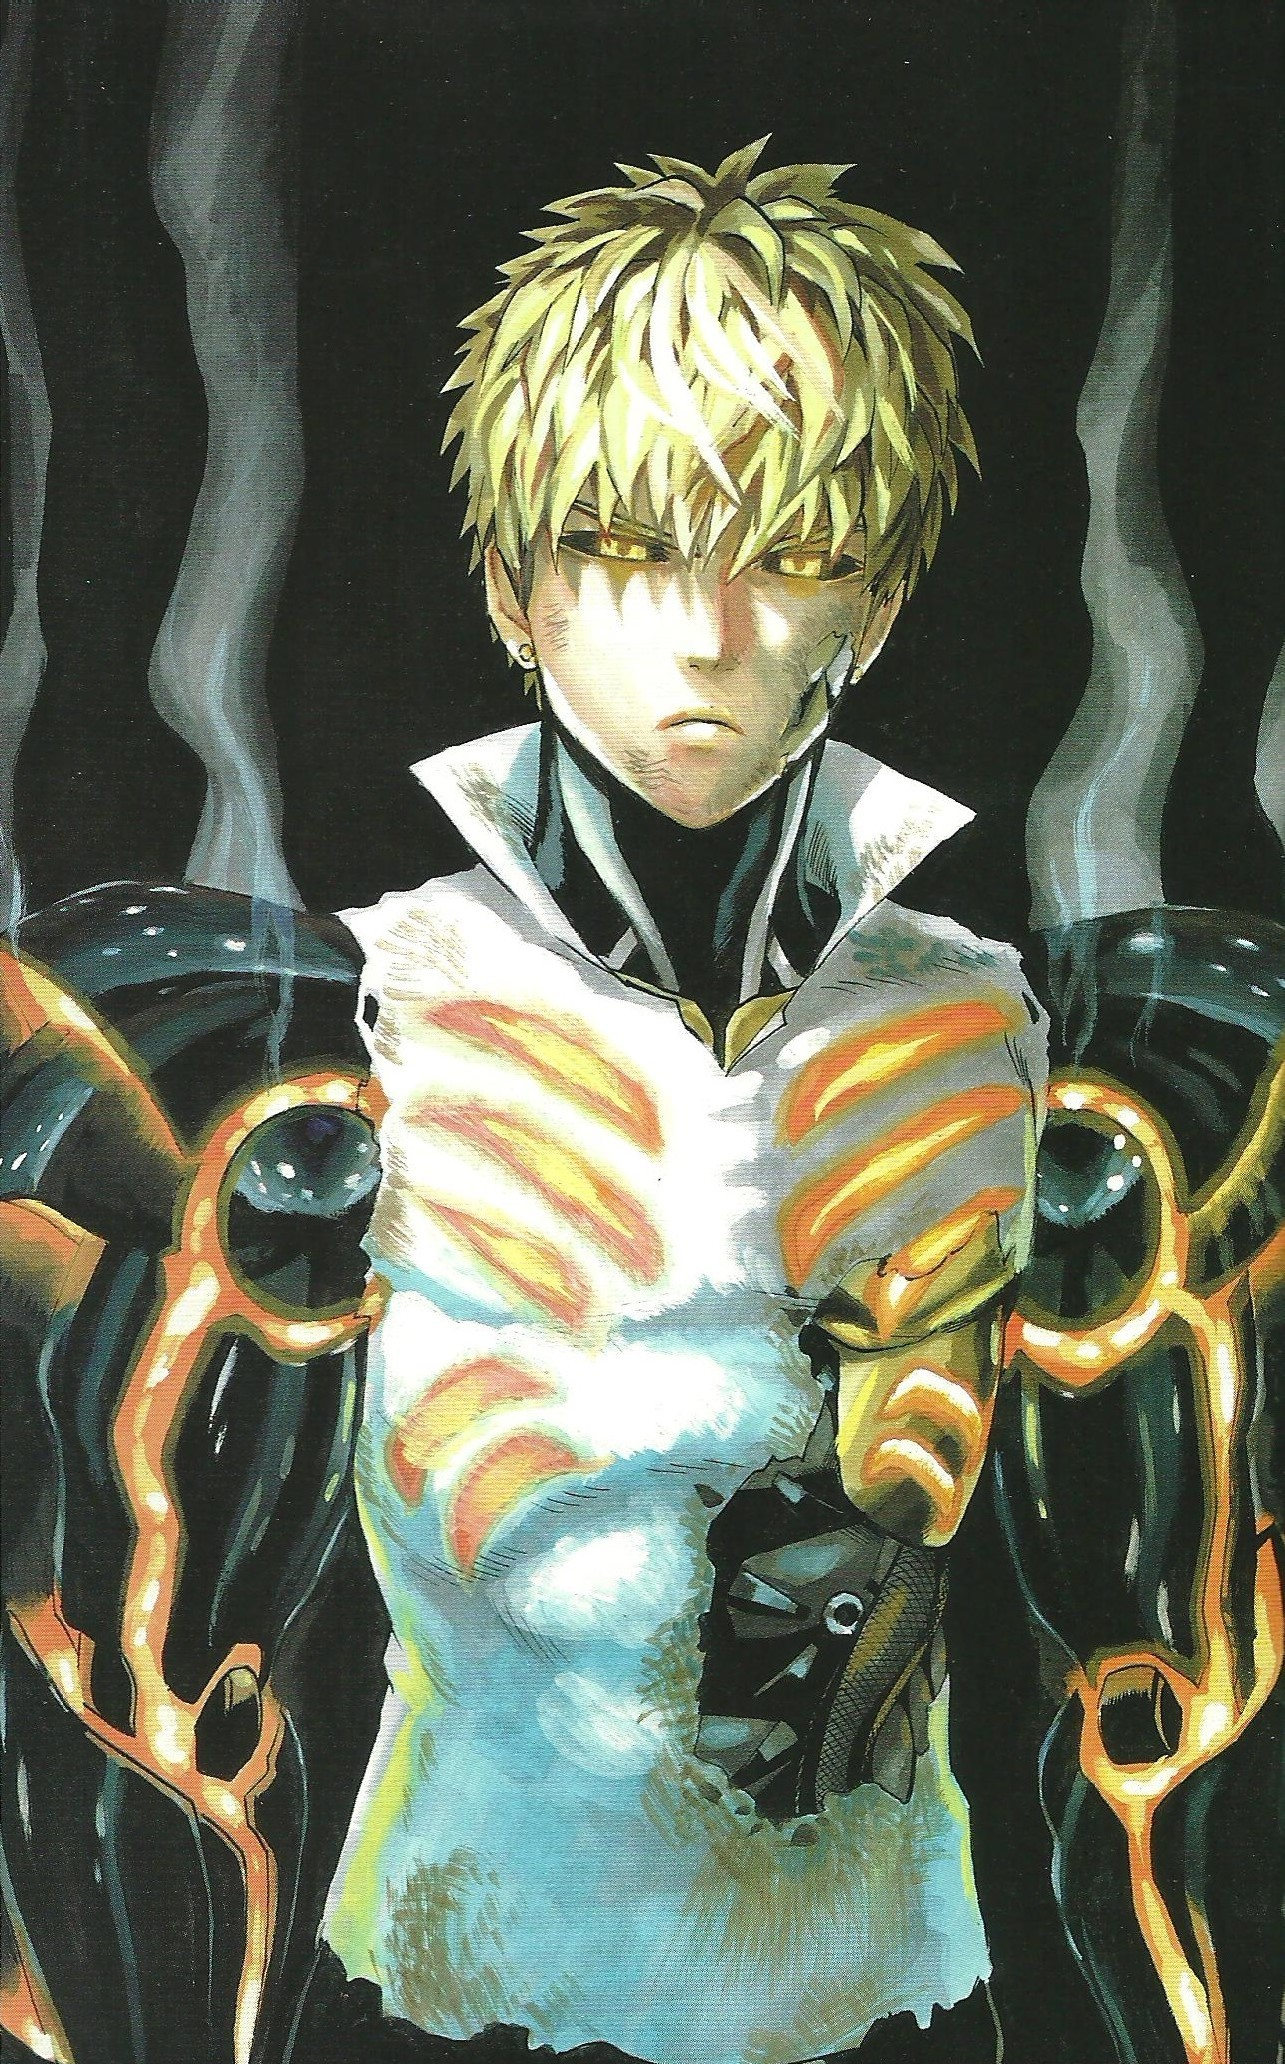 One Punch Man Genos wallpaper ·① Download free backgrounds for desktop and mobile devices in any ...